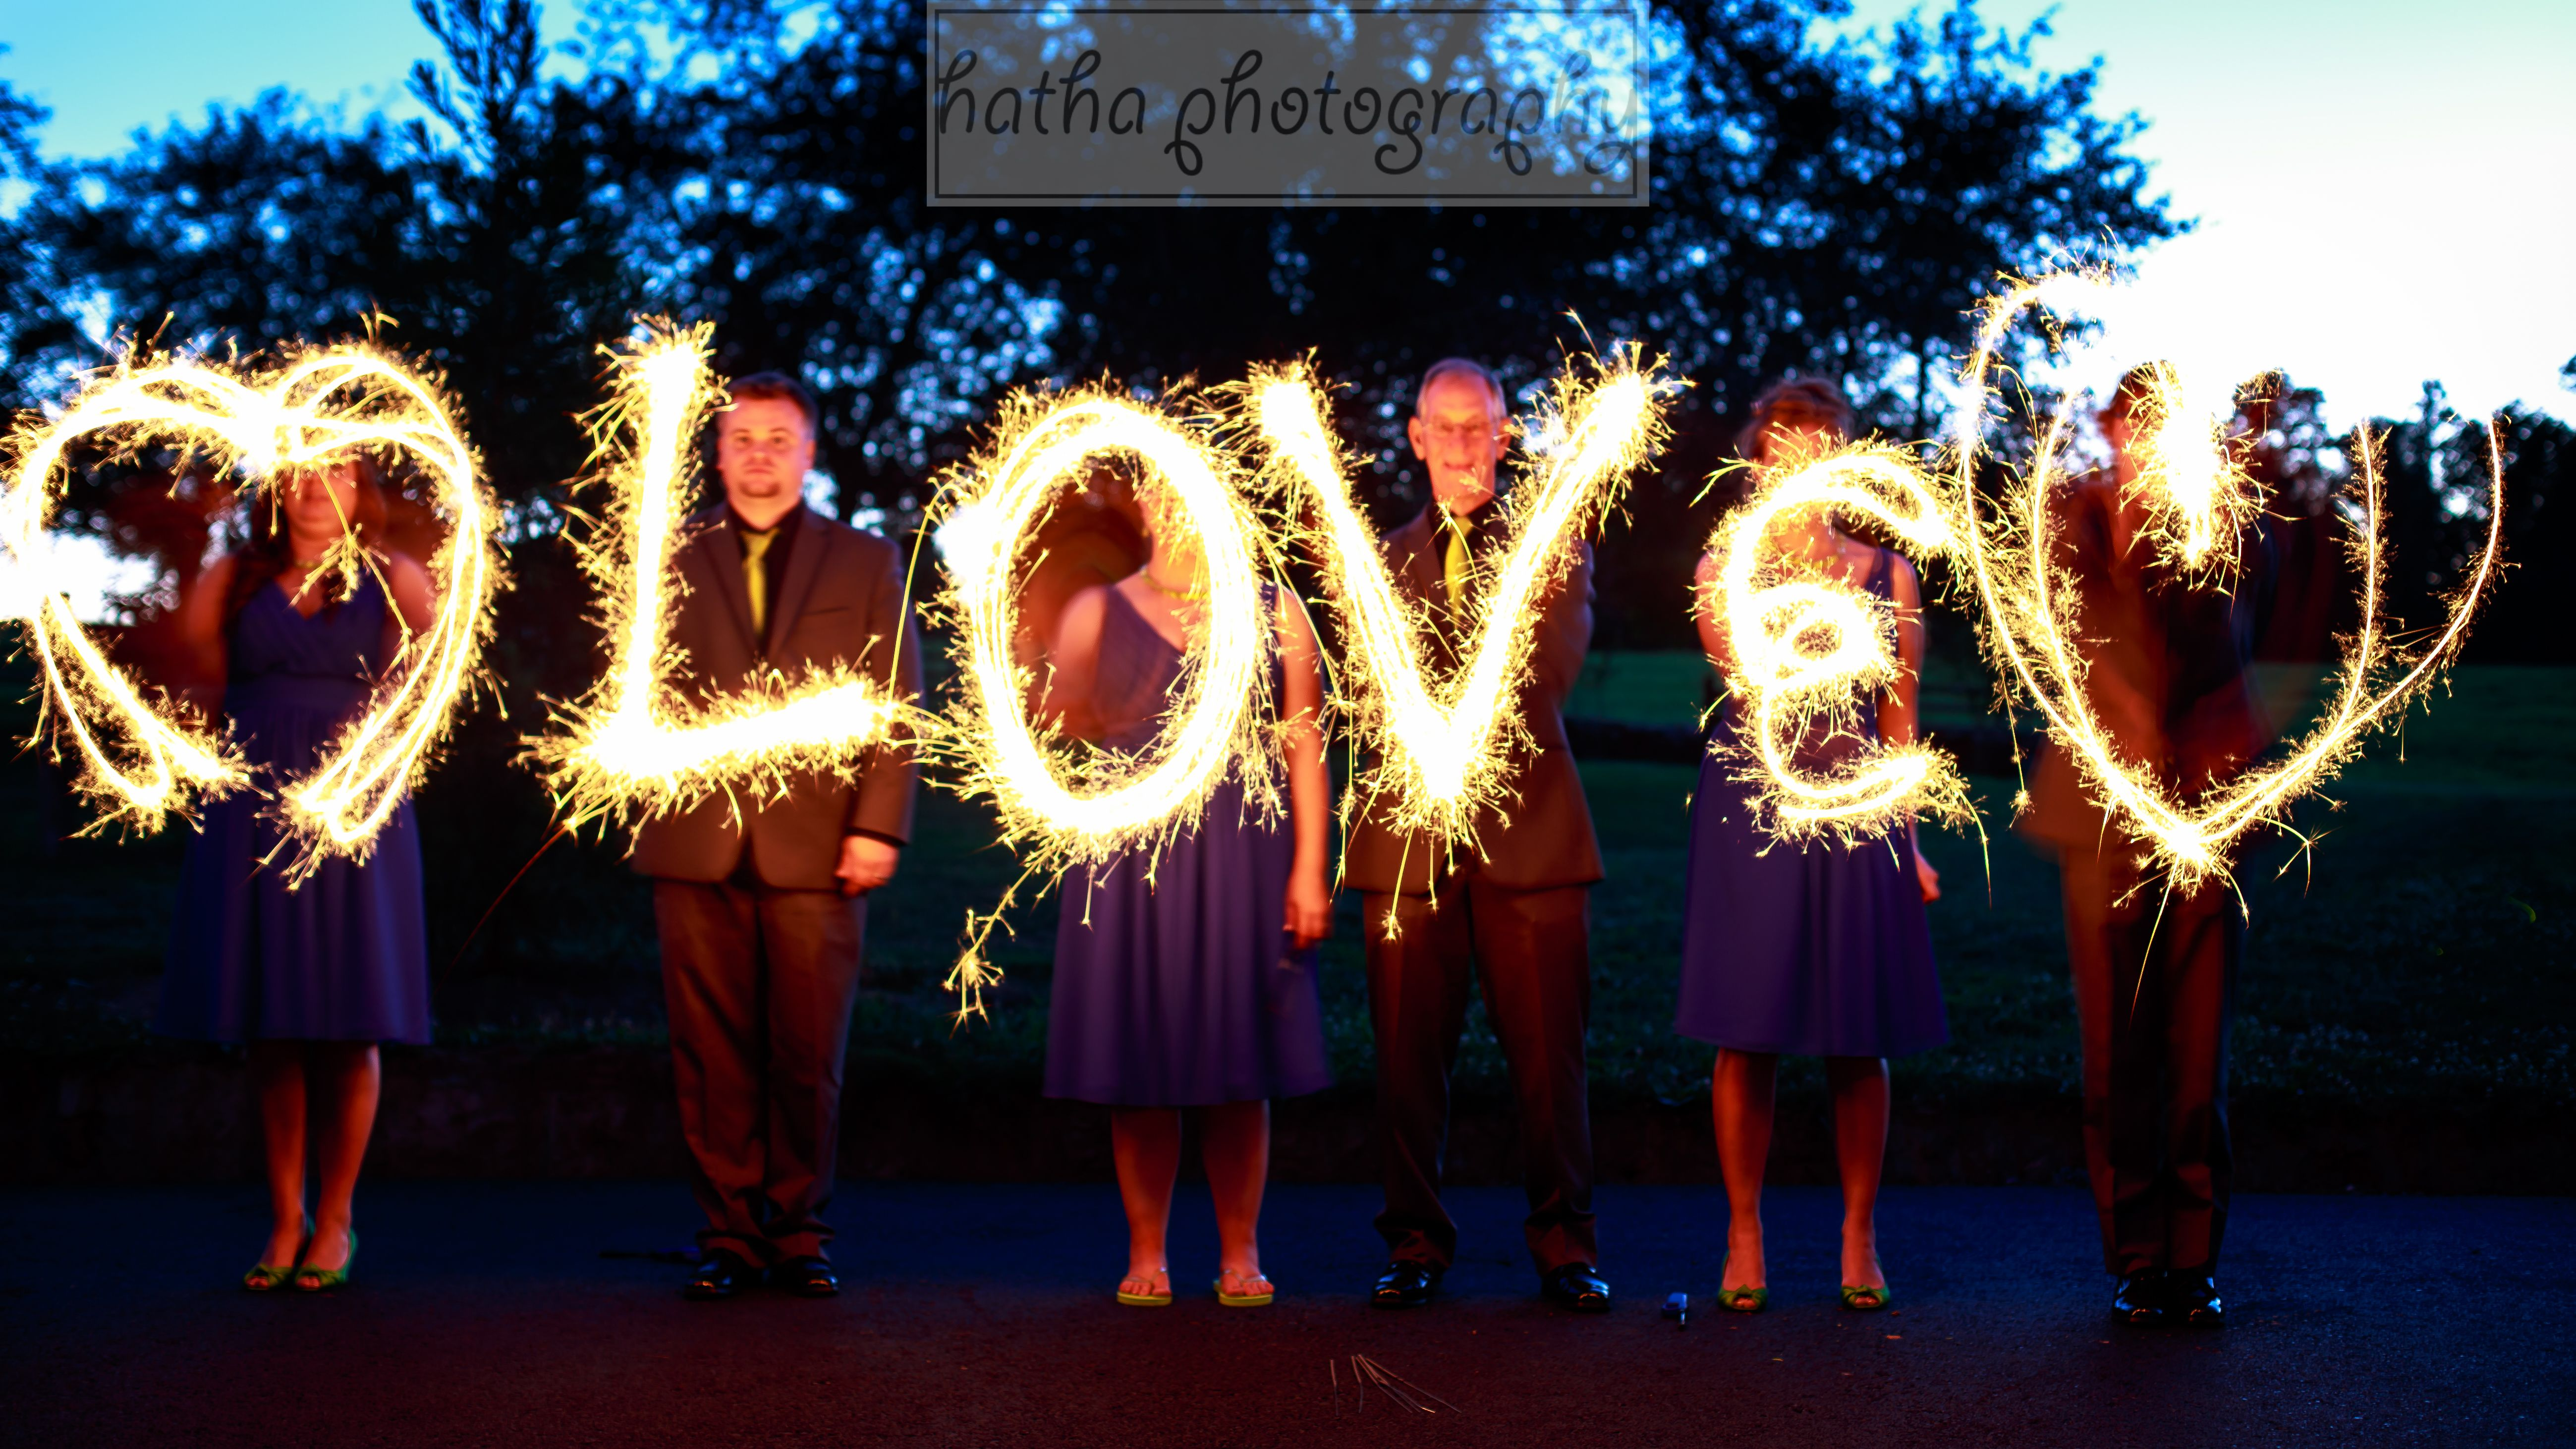 """Love is friendship set on fire.""~~~Jeremy Taylor  #wedding #love #sparklers"